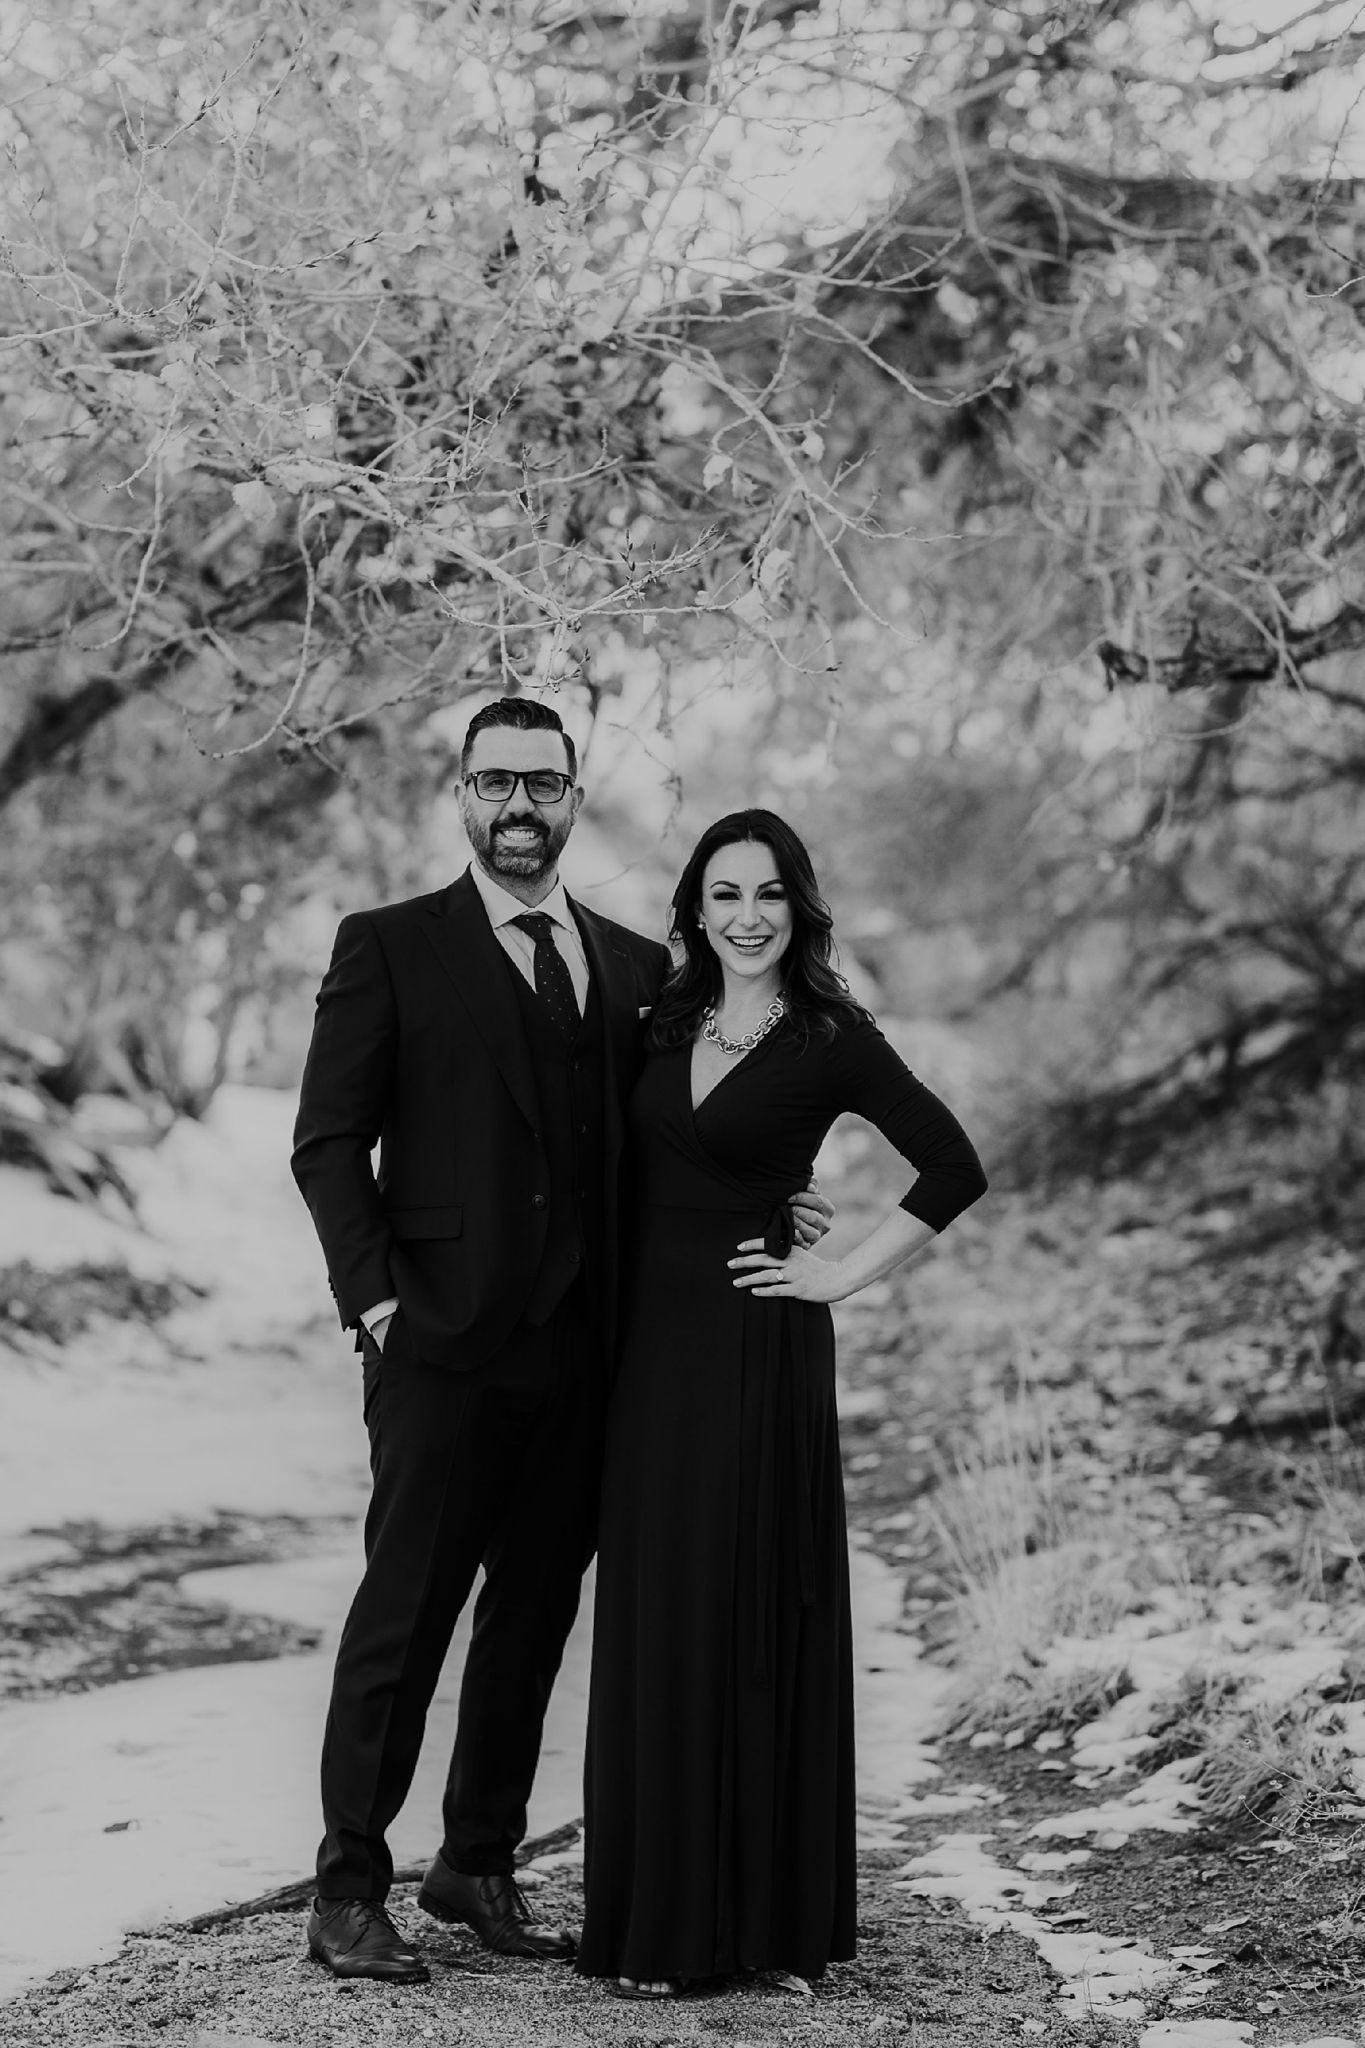 Alicia+lucia+photography+-+albuquerque+wedding+photographer+-+santa+fe+wedding+photography+-+new+mexico+wedding+photographer+-+new+mexico+wedding+-+engagement+-+winter+engagement+-+albuquerque+engagement_0003.jpg